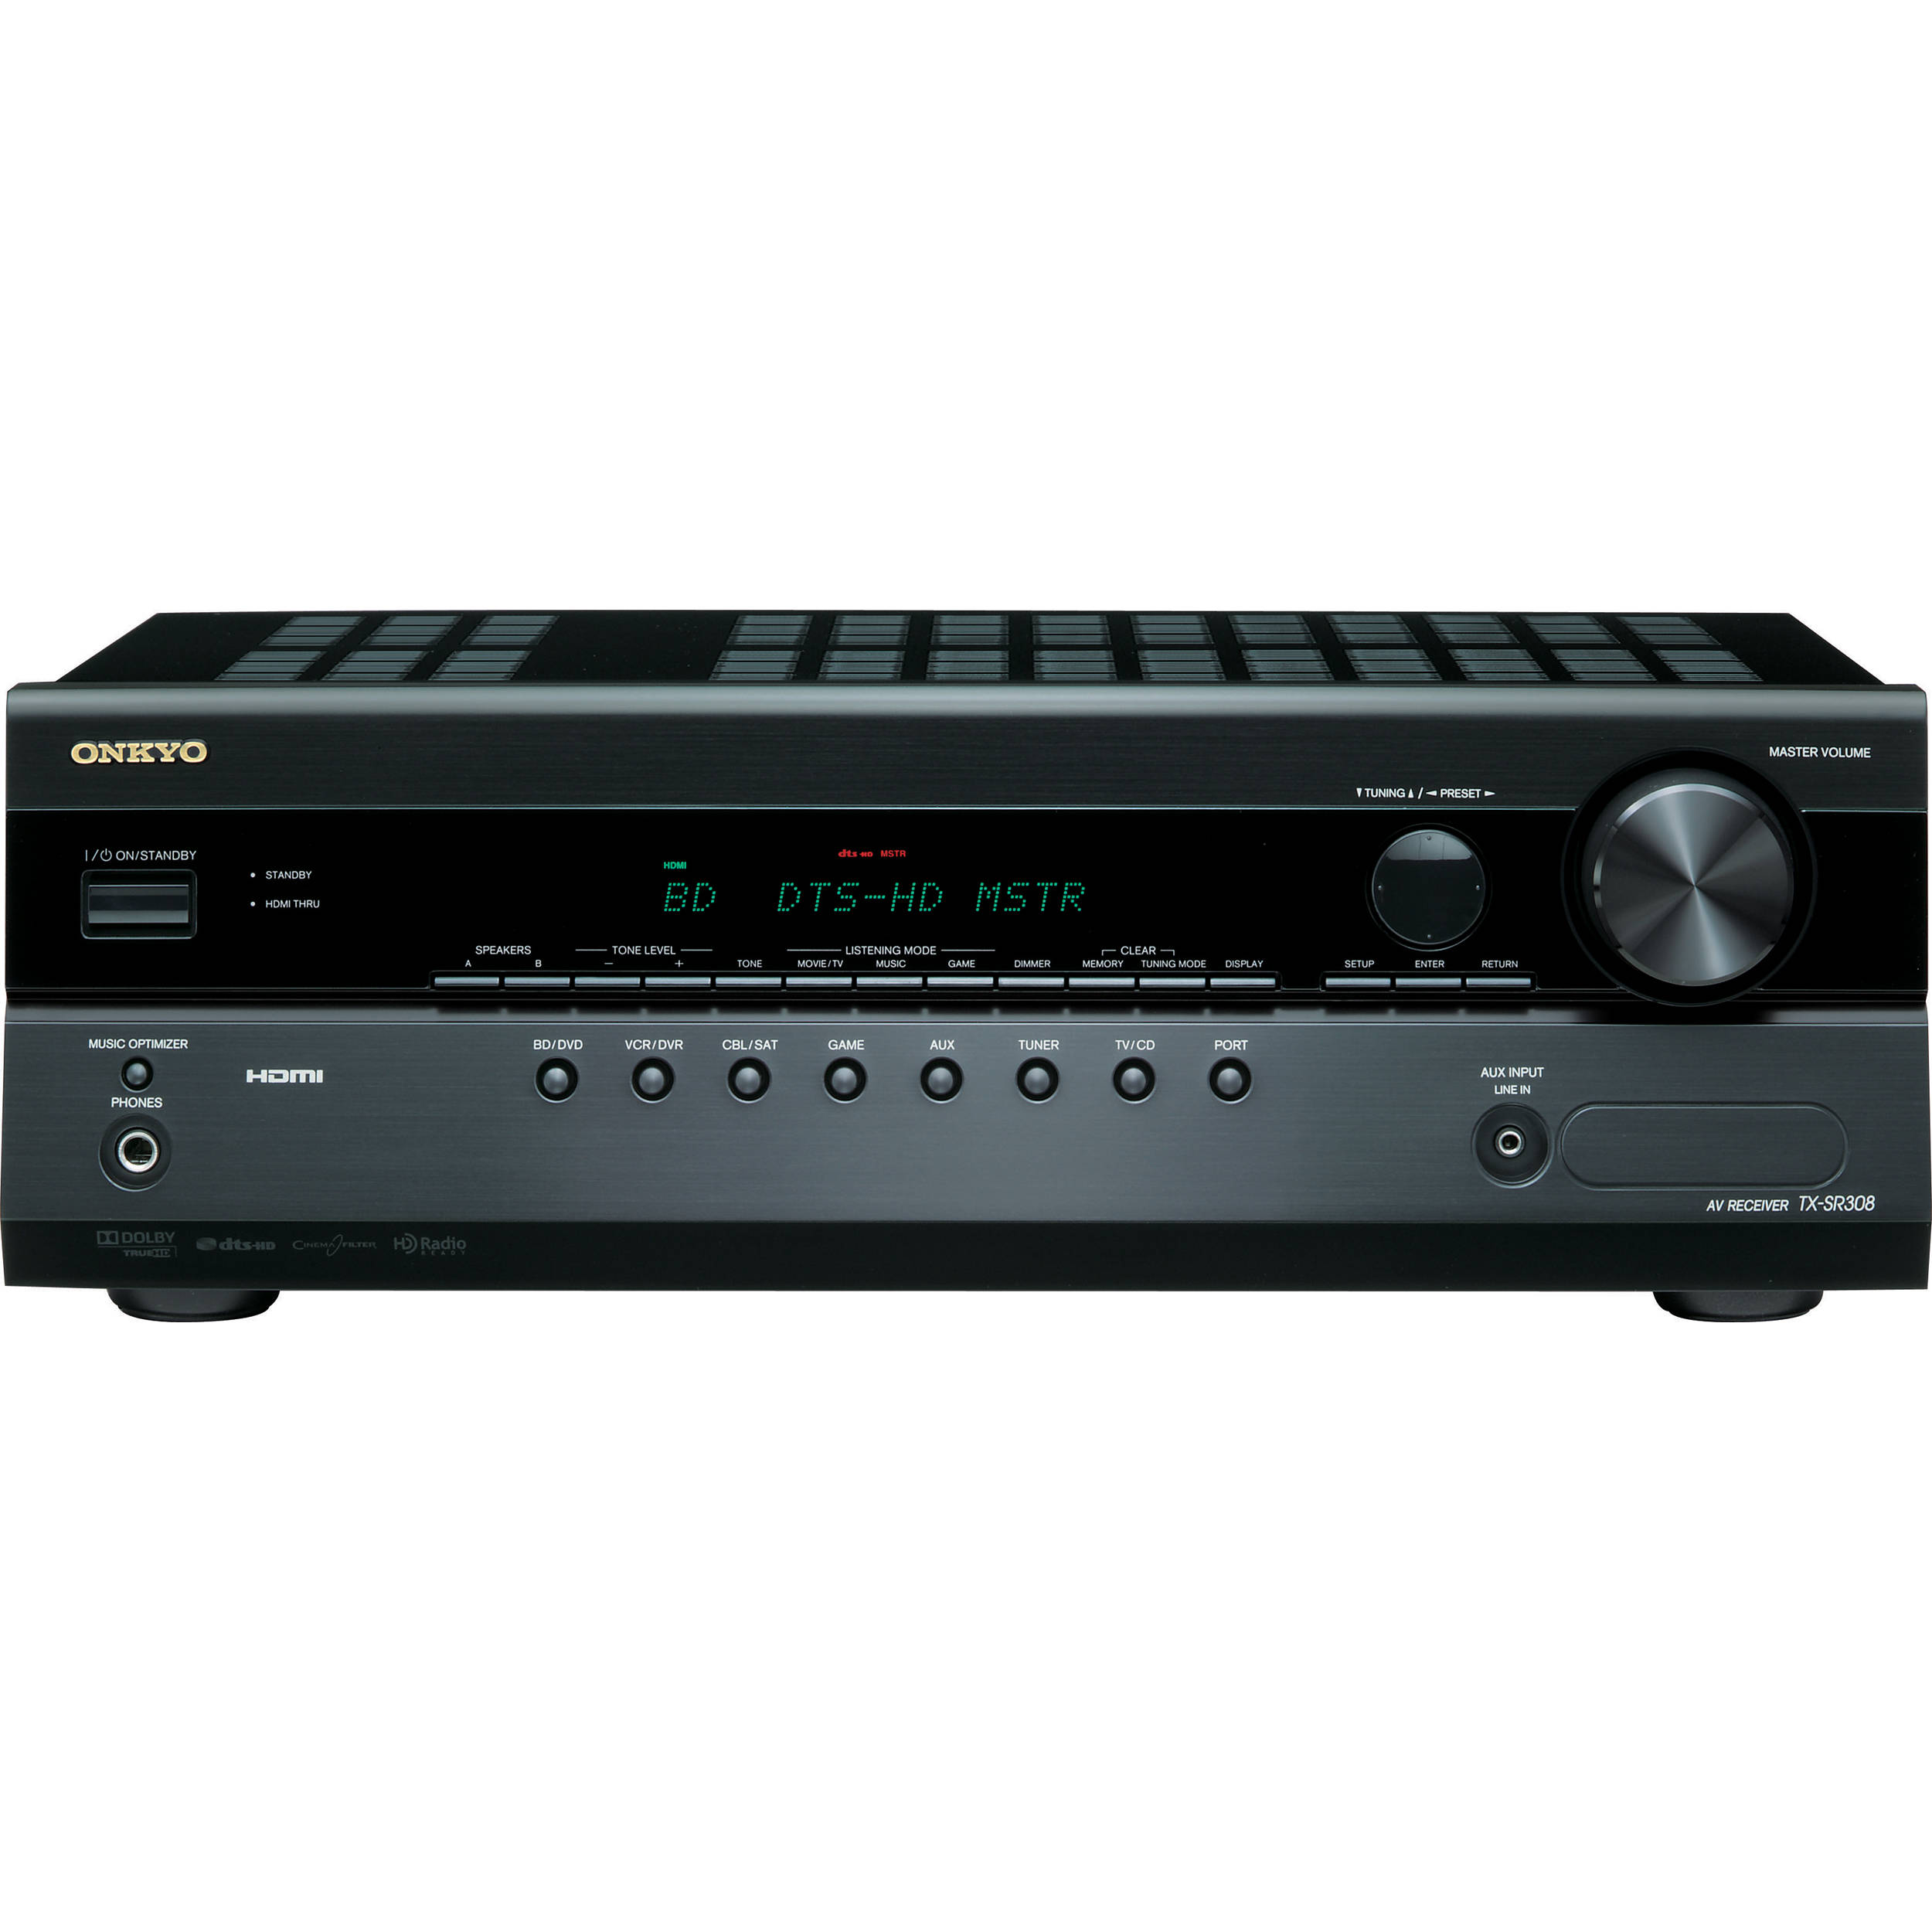 Onkyo TX-SR308 5.1 Channel A/V Home Theater Receiver